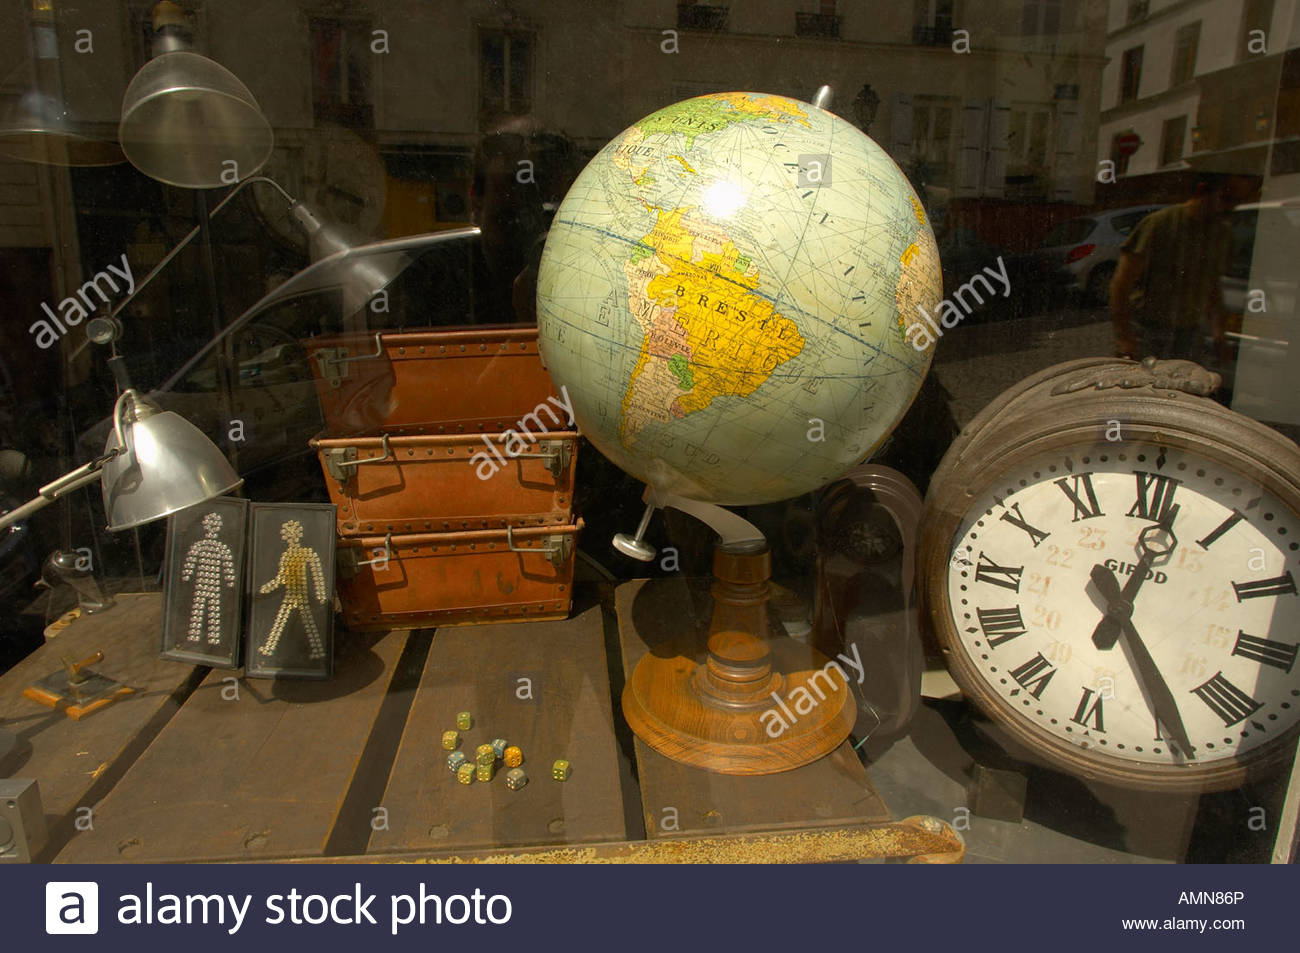 Paris France Montmatre. Antique shop window with old globe and clock. Bric a bac. - Stock Image